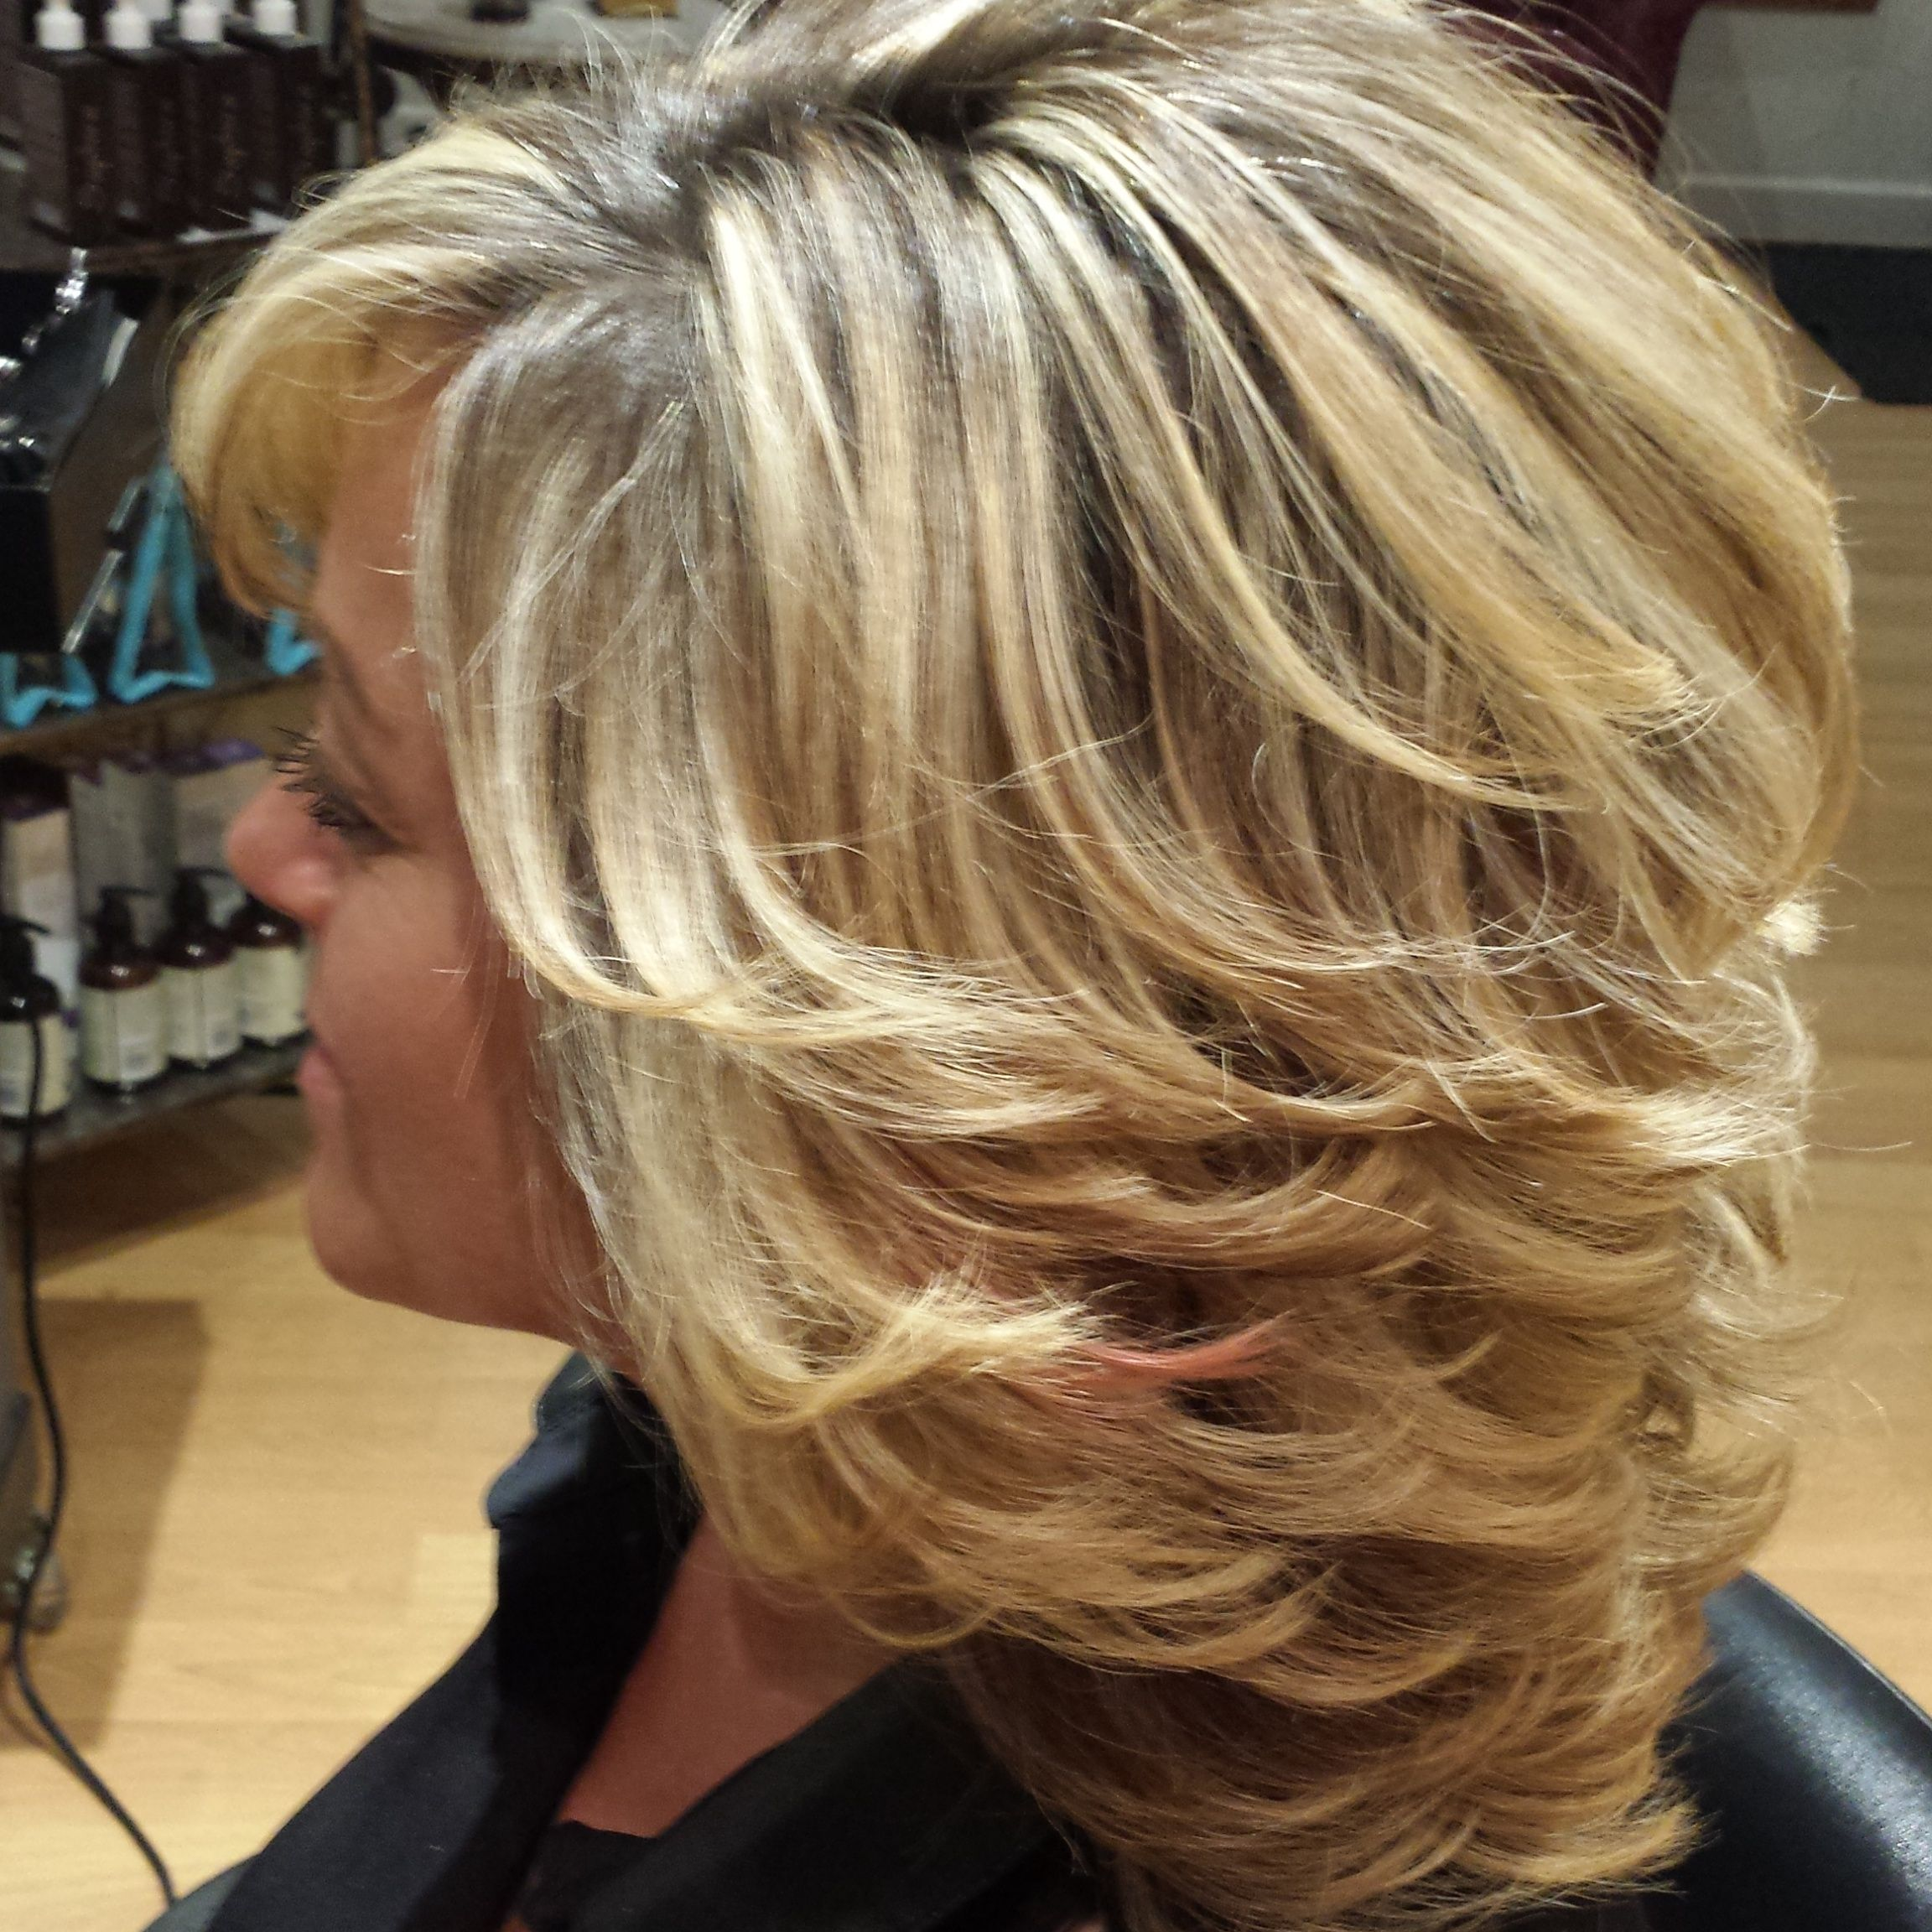 Style De Coiffure Femme Cheveux Mi-long Style And Color By Rolando Cevallos Paris Salon Style